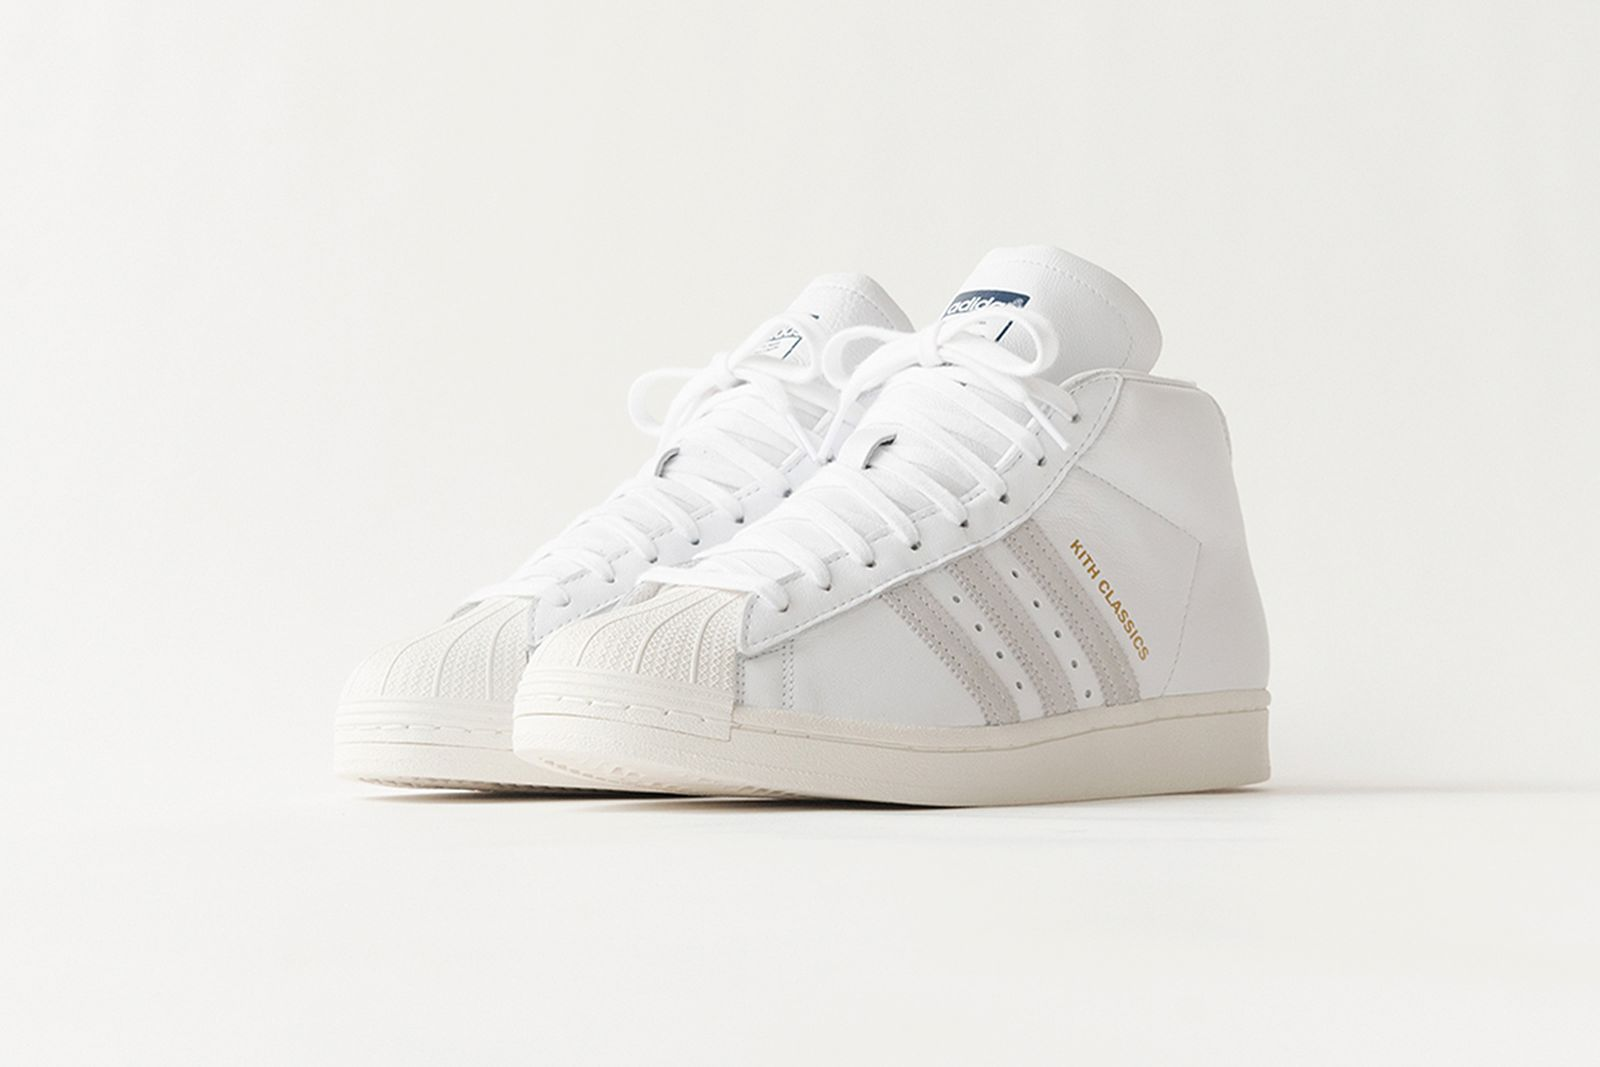 kith-adidas-summer-2021-release-info-16